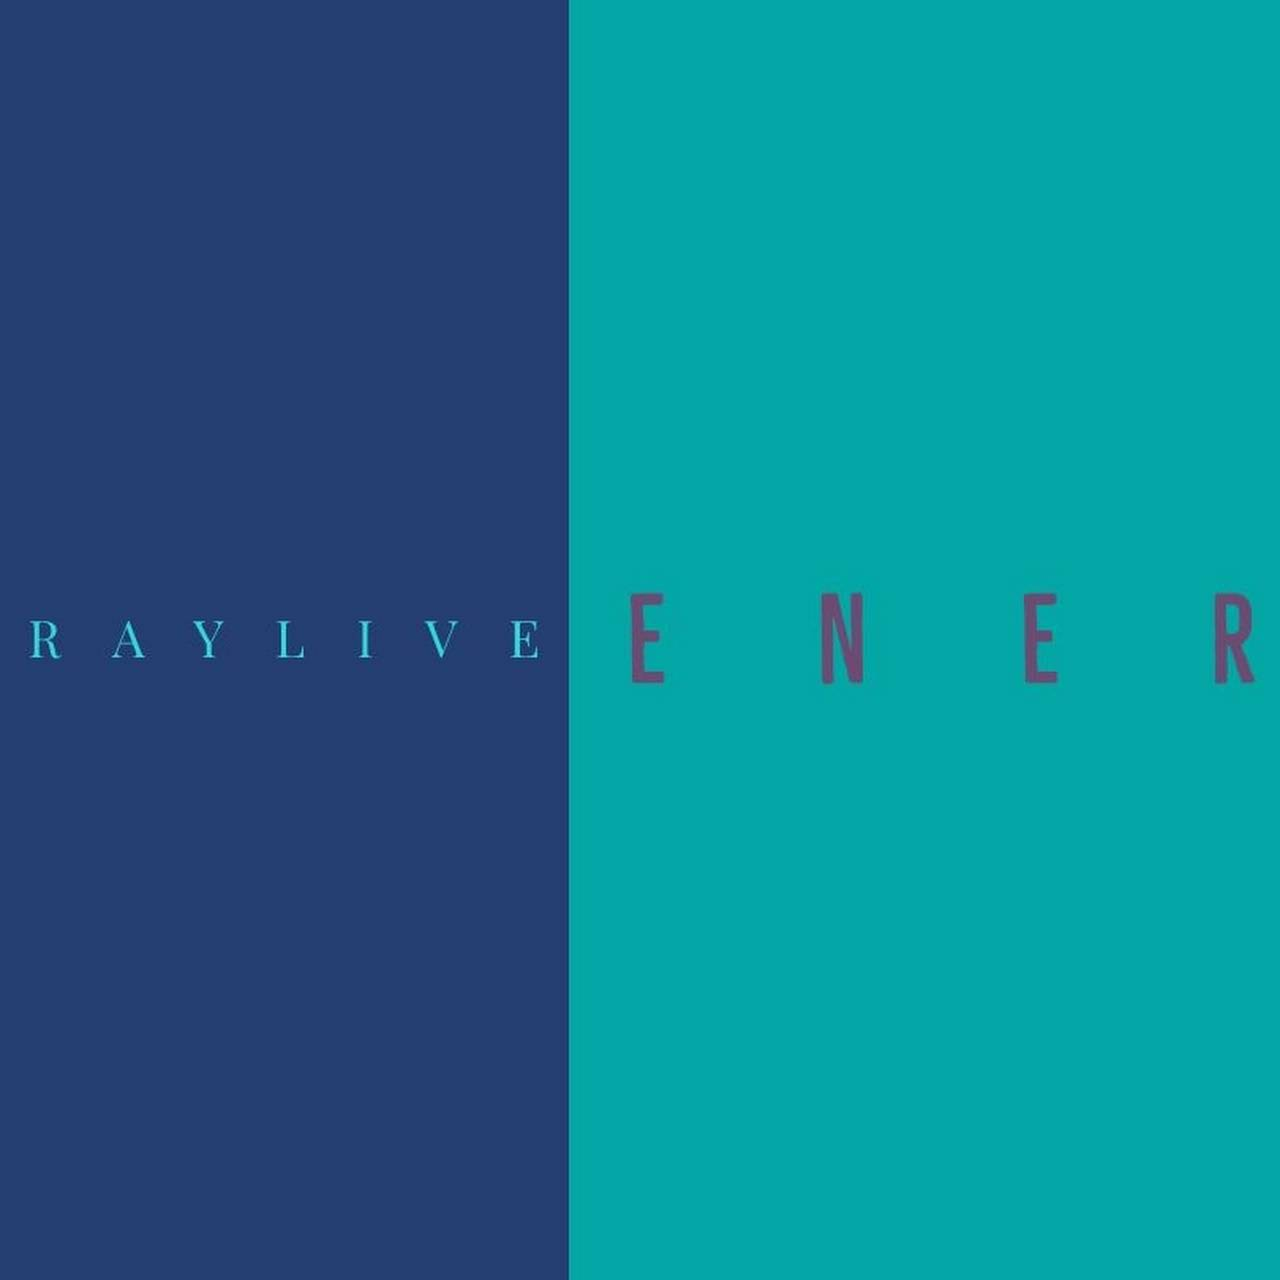 RAYLIVE ENERGY CONSULT - Oil & Natural Gas Company